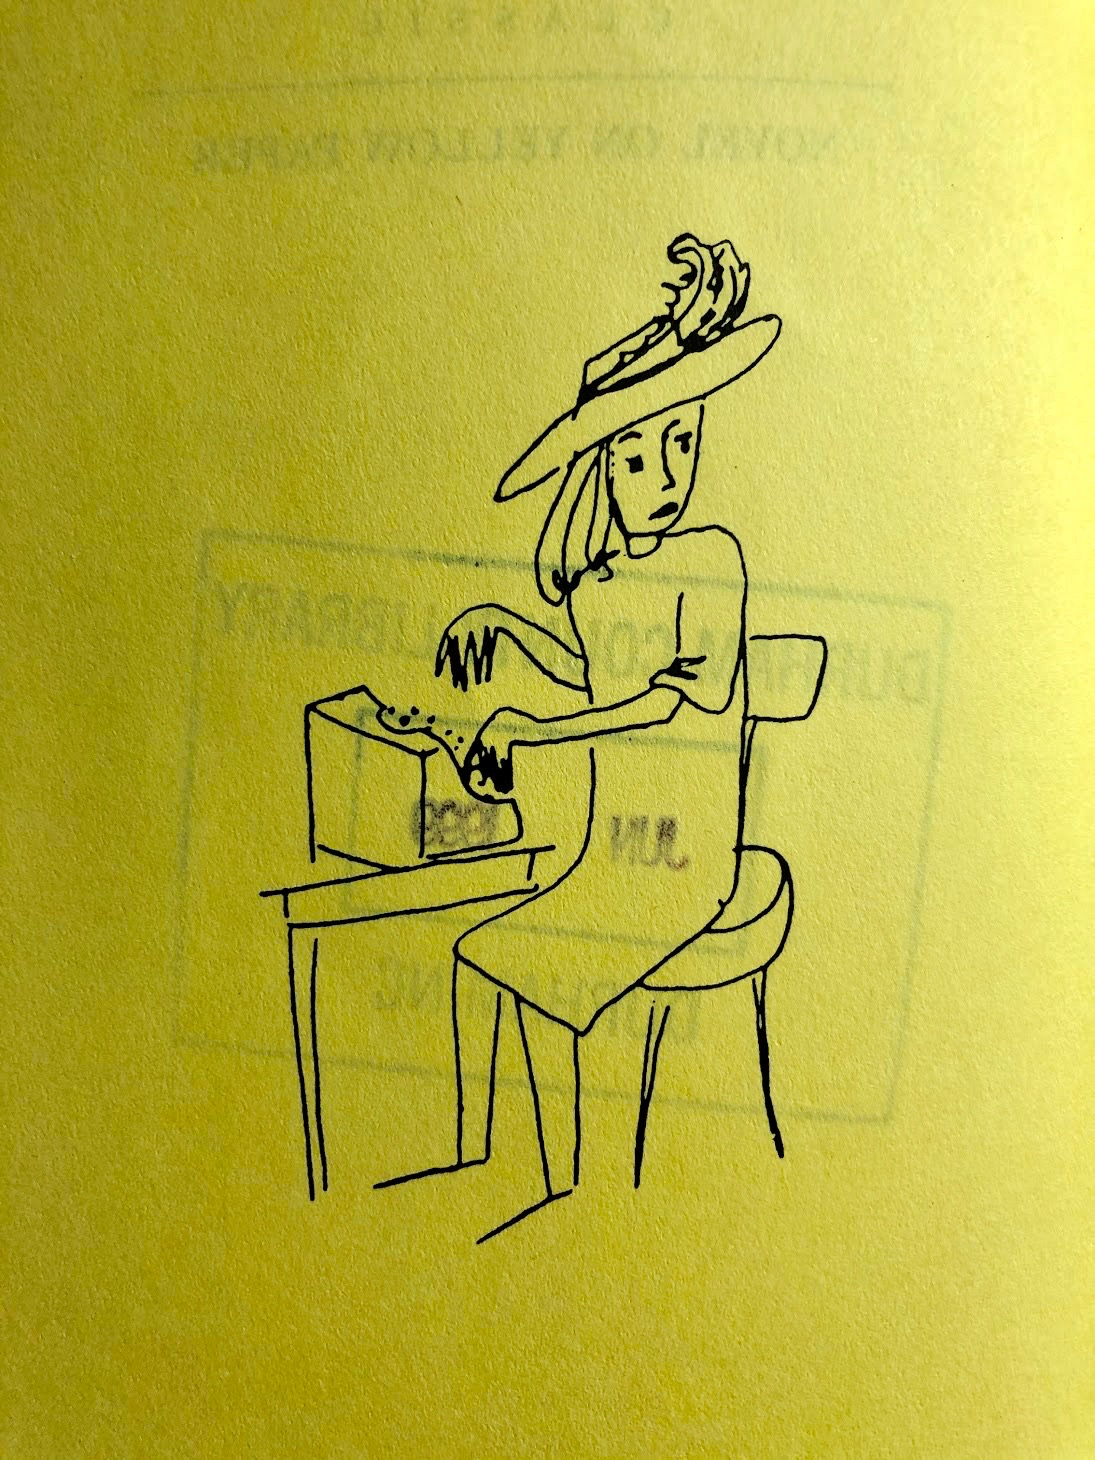 Illustration from Stevie Smith, Novel on Yellow Paper, or, Work It Out for Yourself